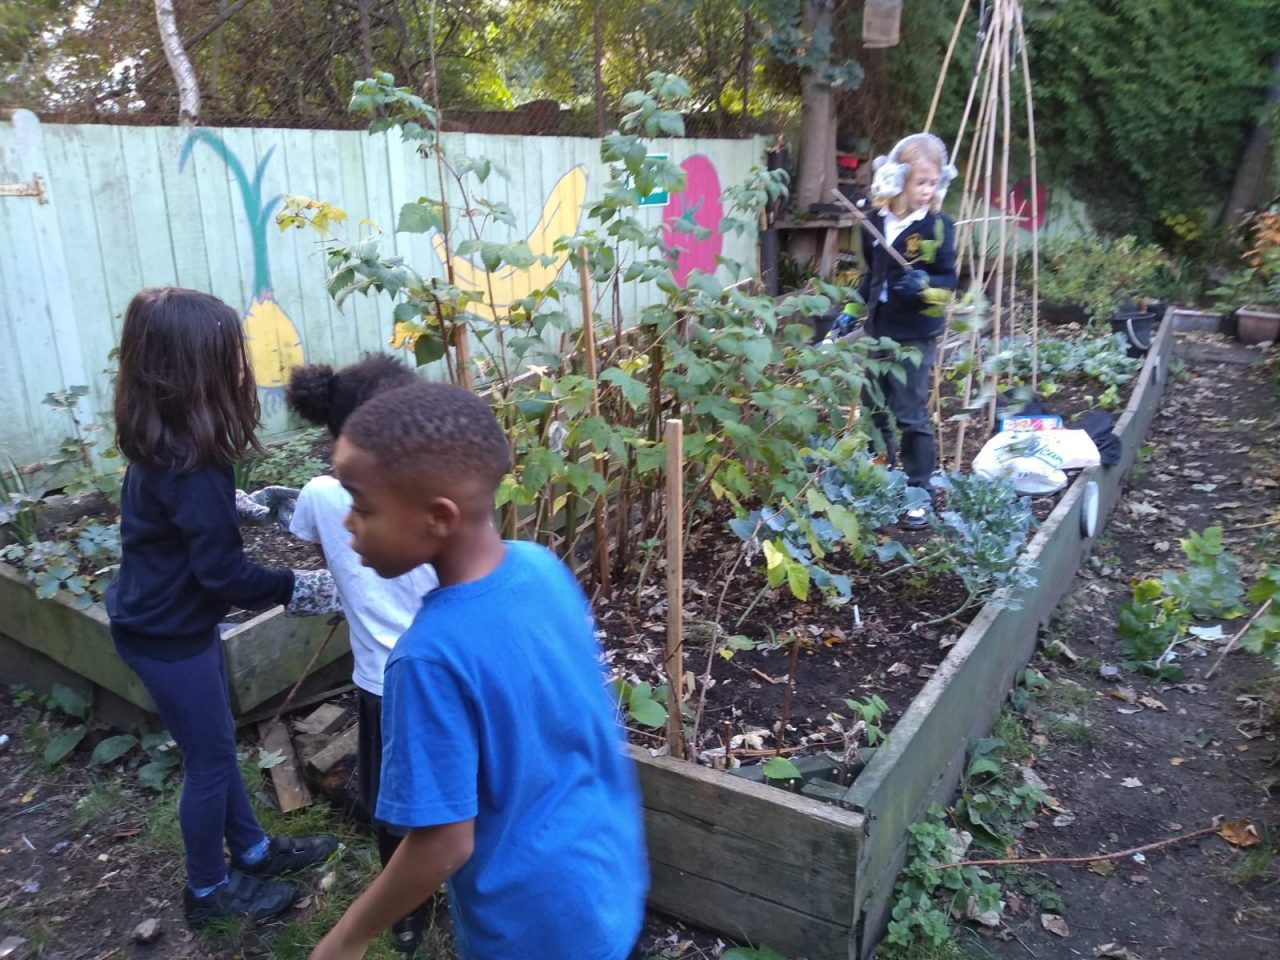 Green-fingered kids go wild as healthy food scheme is extended